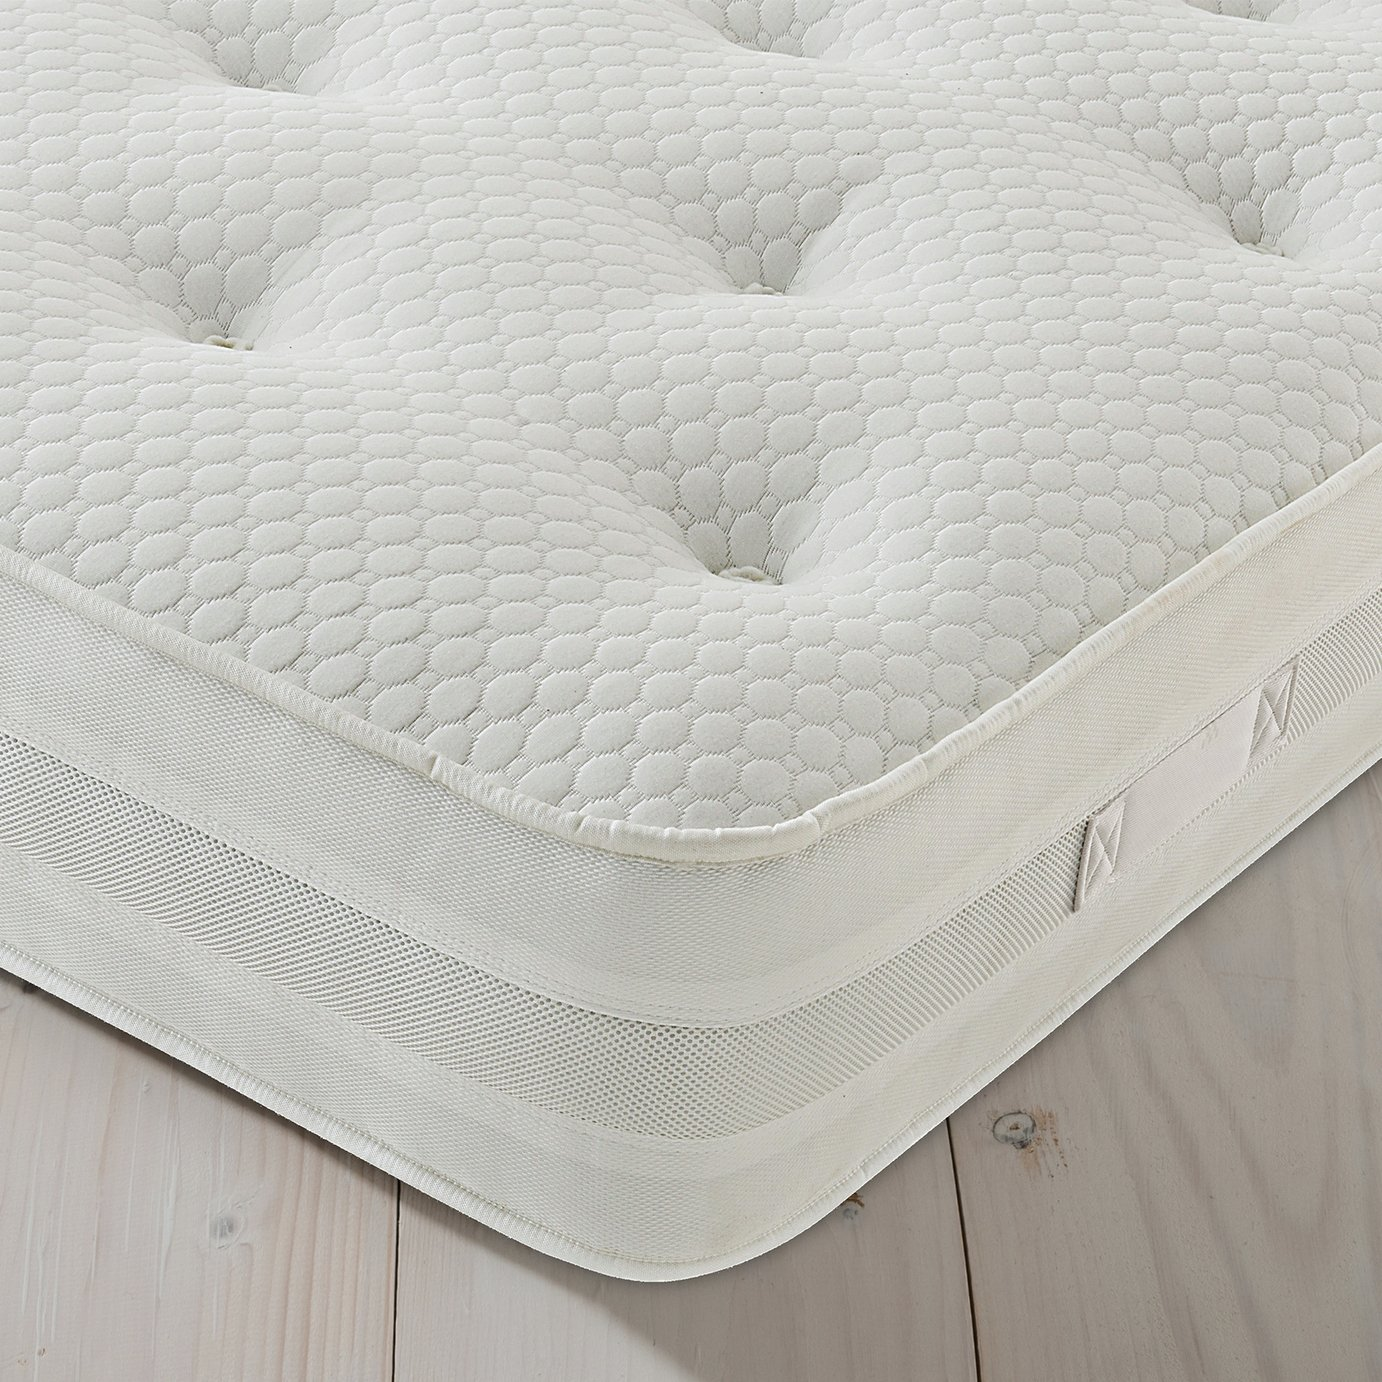 Silentnight Walton 1200 Pocket Luxury Kingsize Mattress